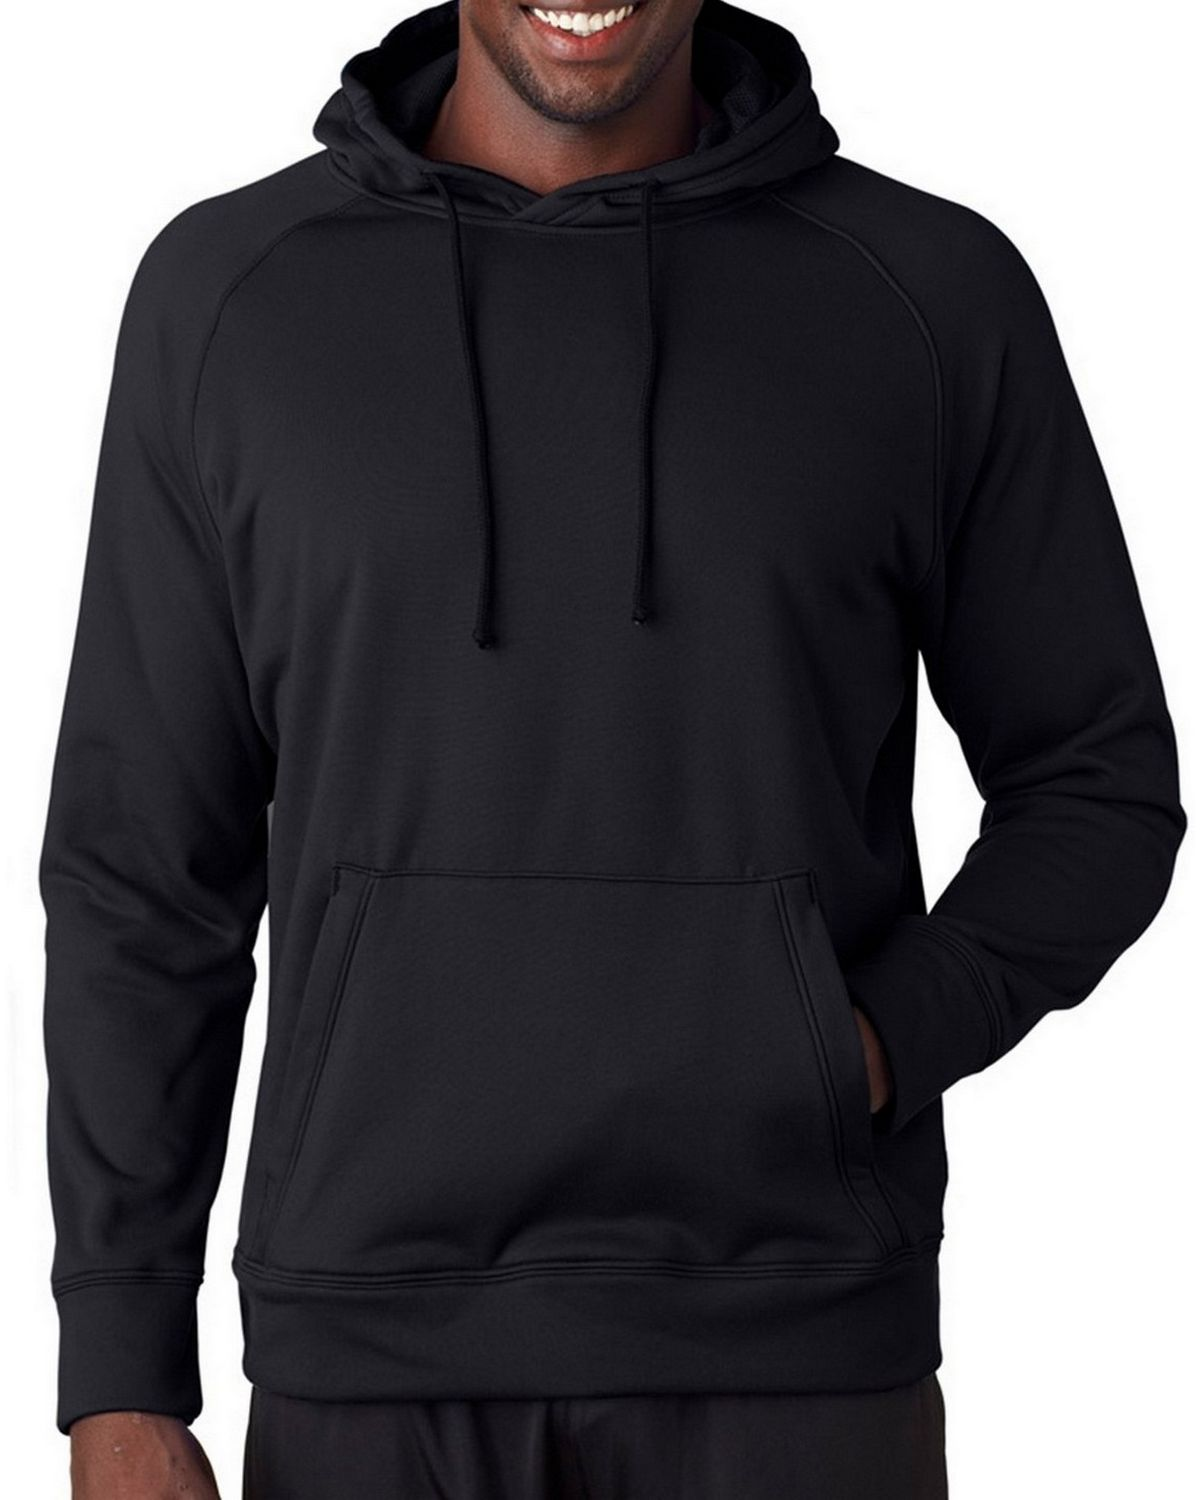 A4 N4237 Adult Solid Tech Fleece Hoodie - White - XL N4237